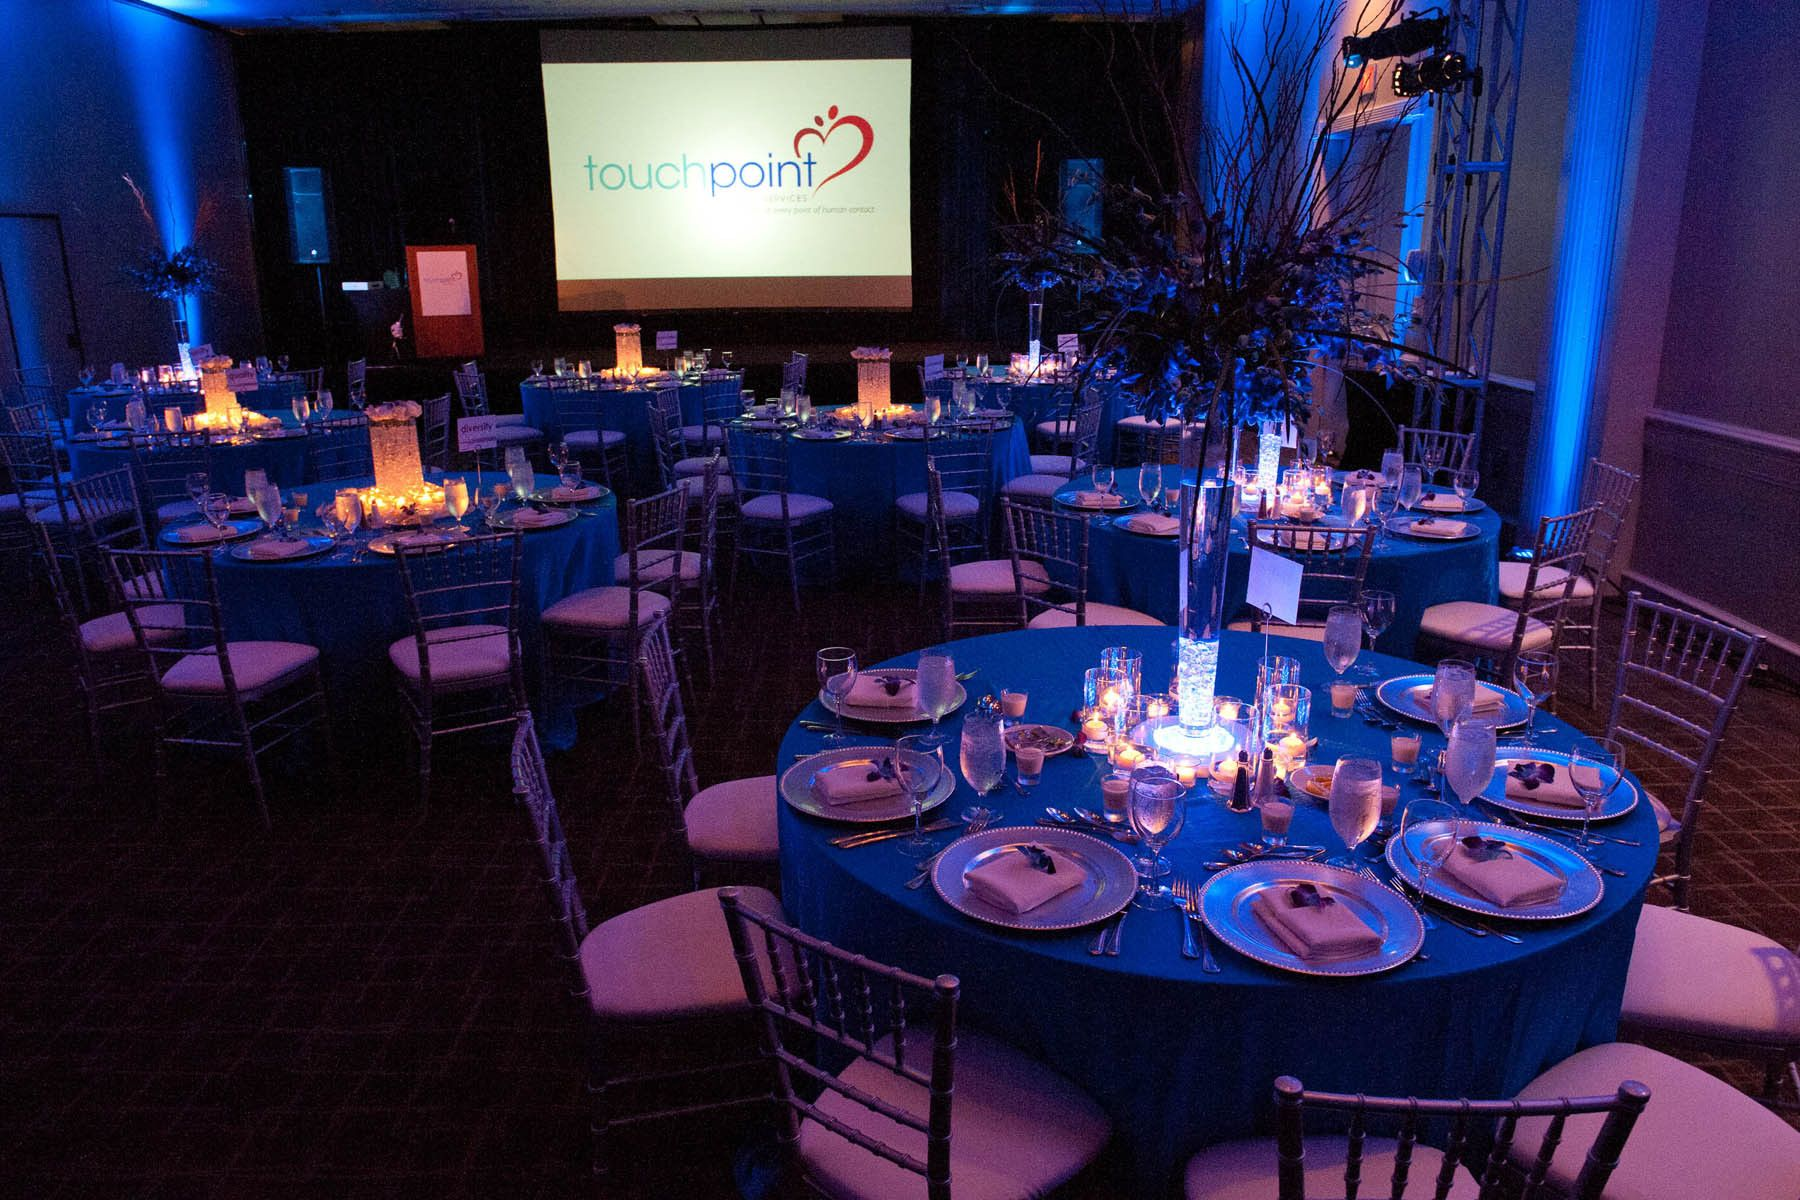 Touch Point awards luncheon